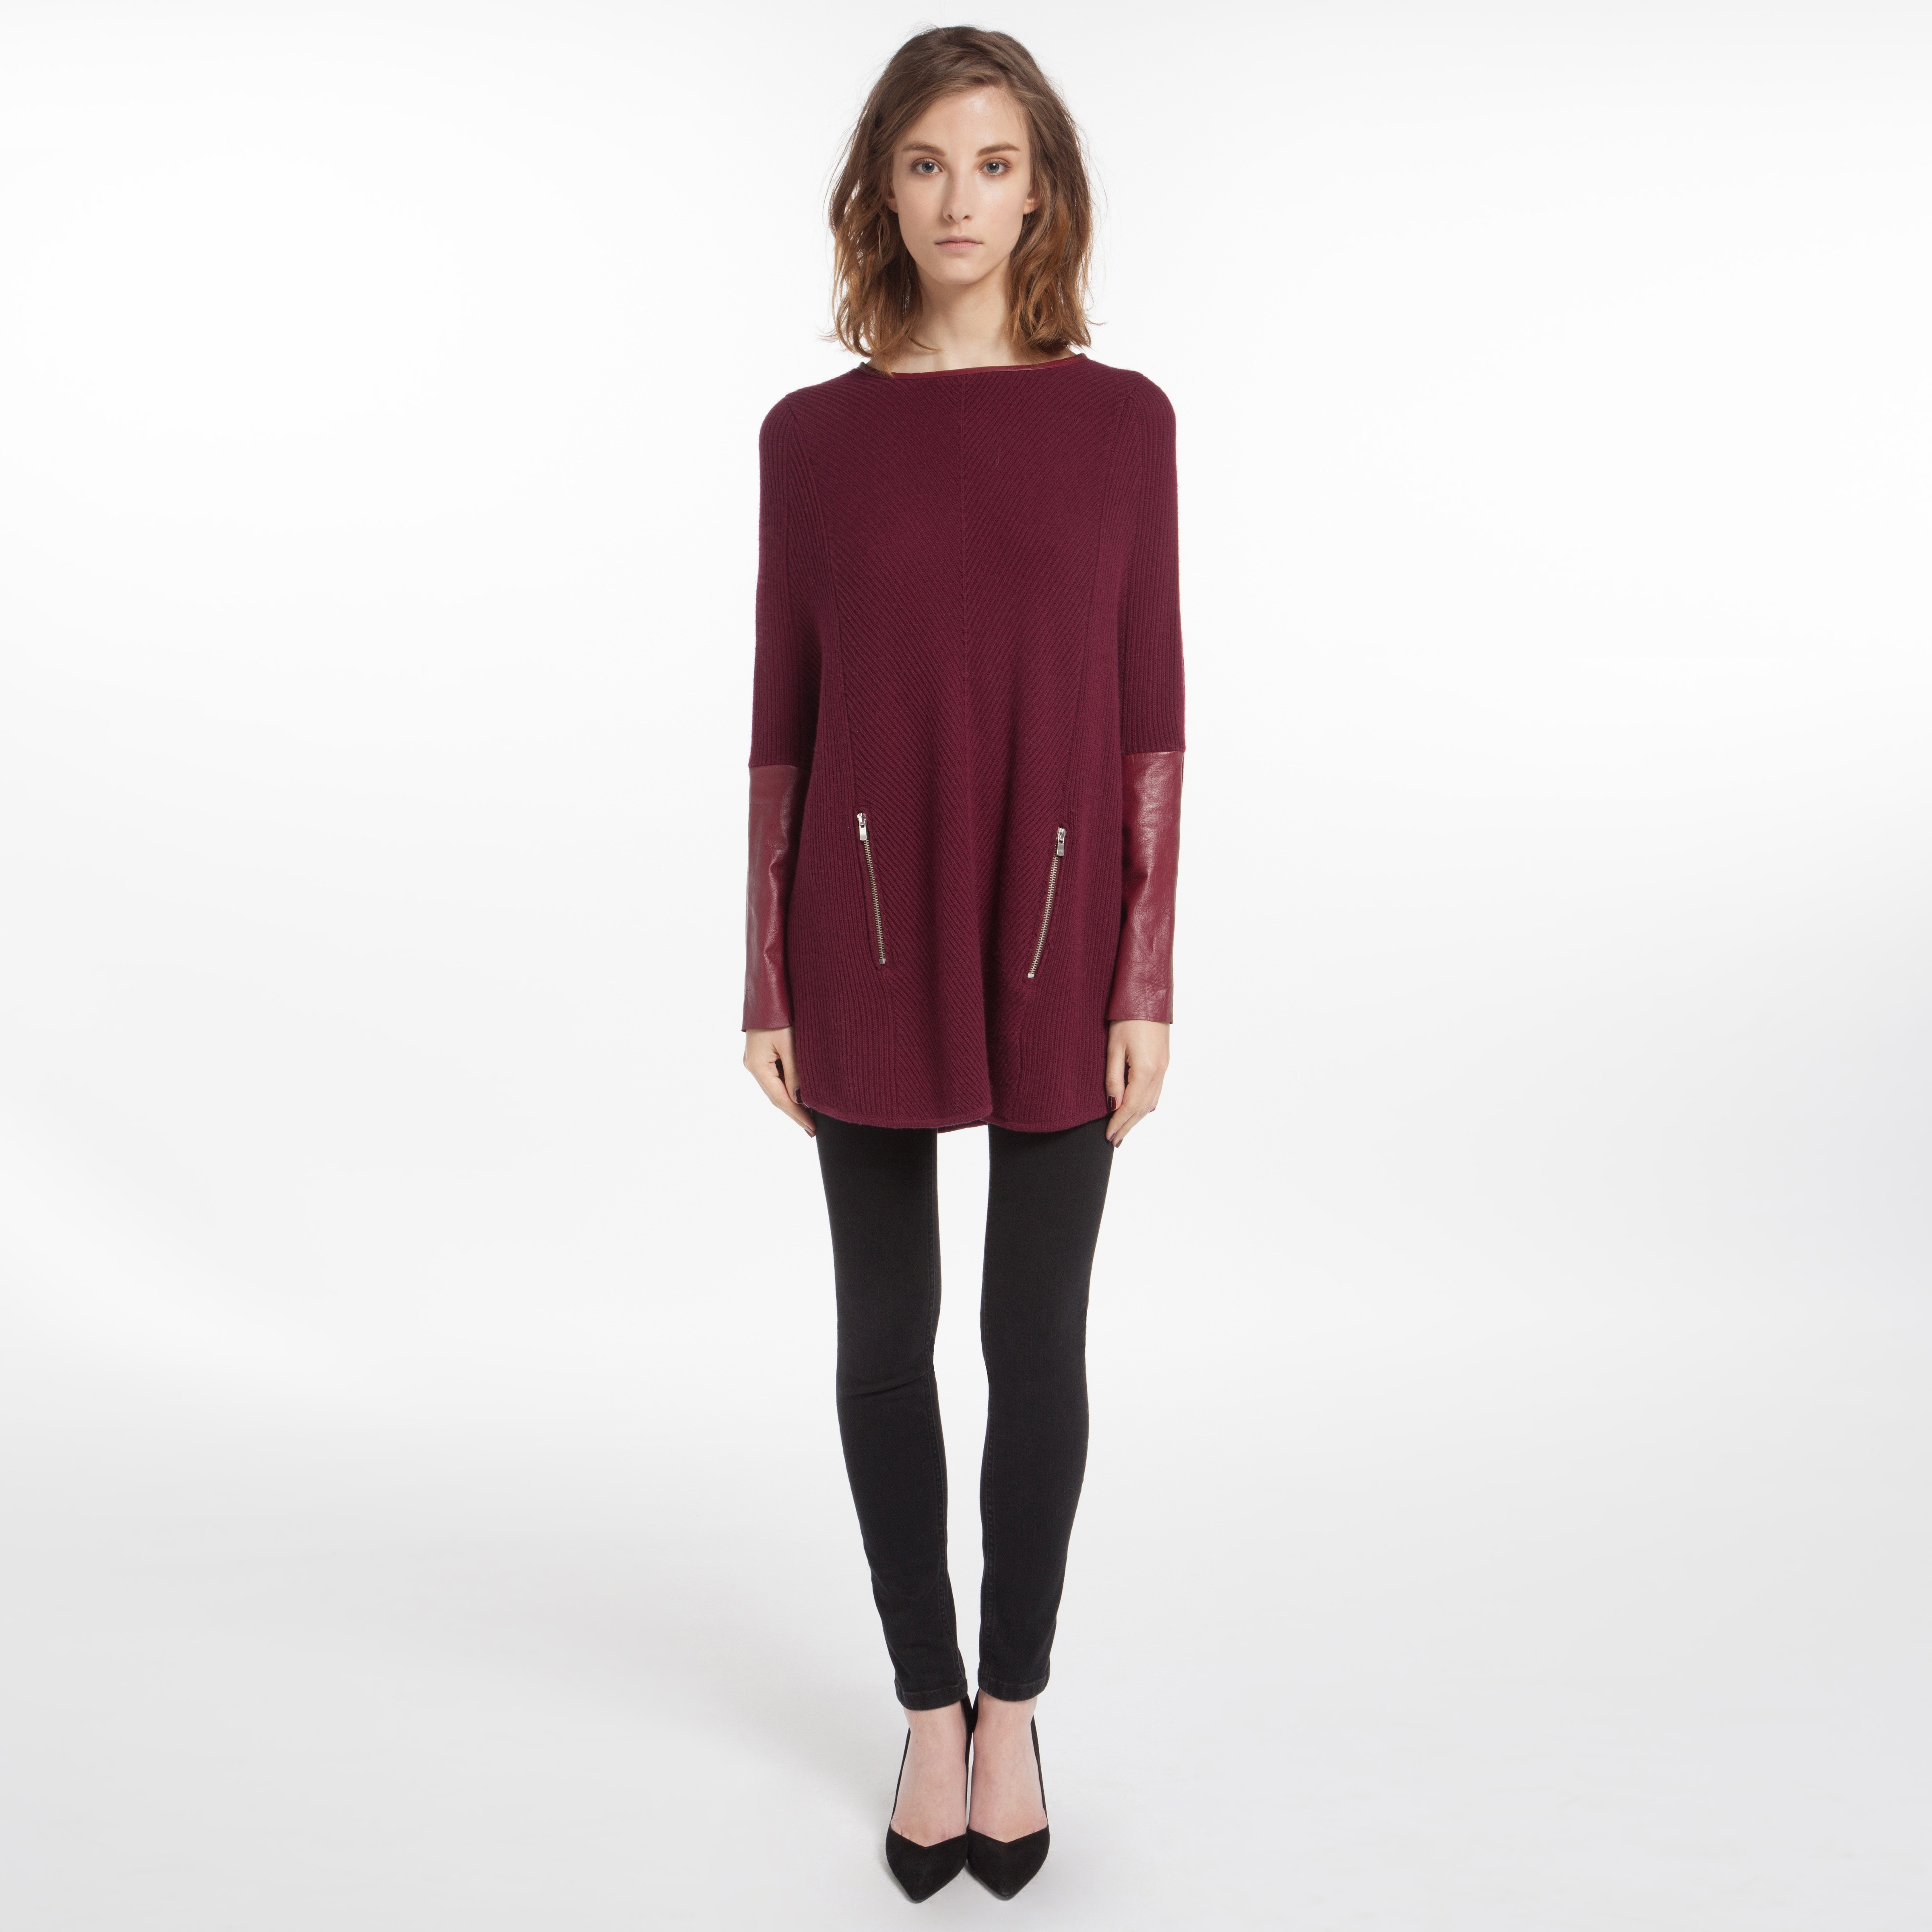 Maje Duel Poncho Sweater in Red